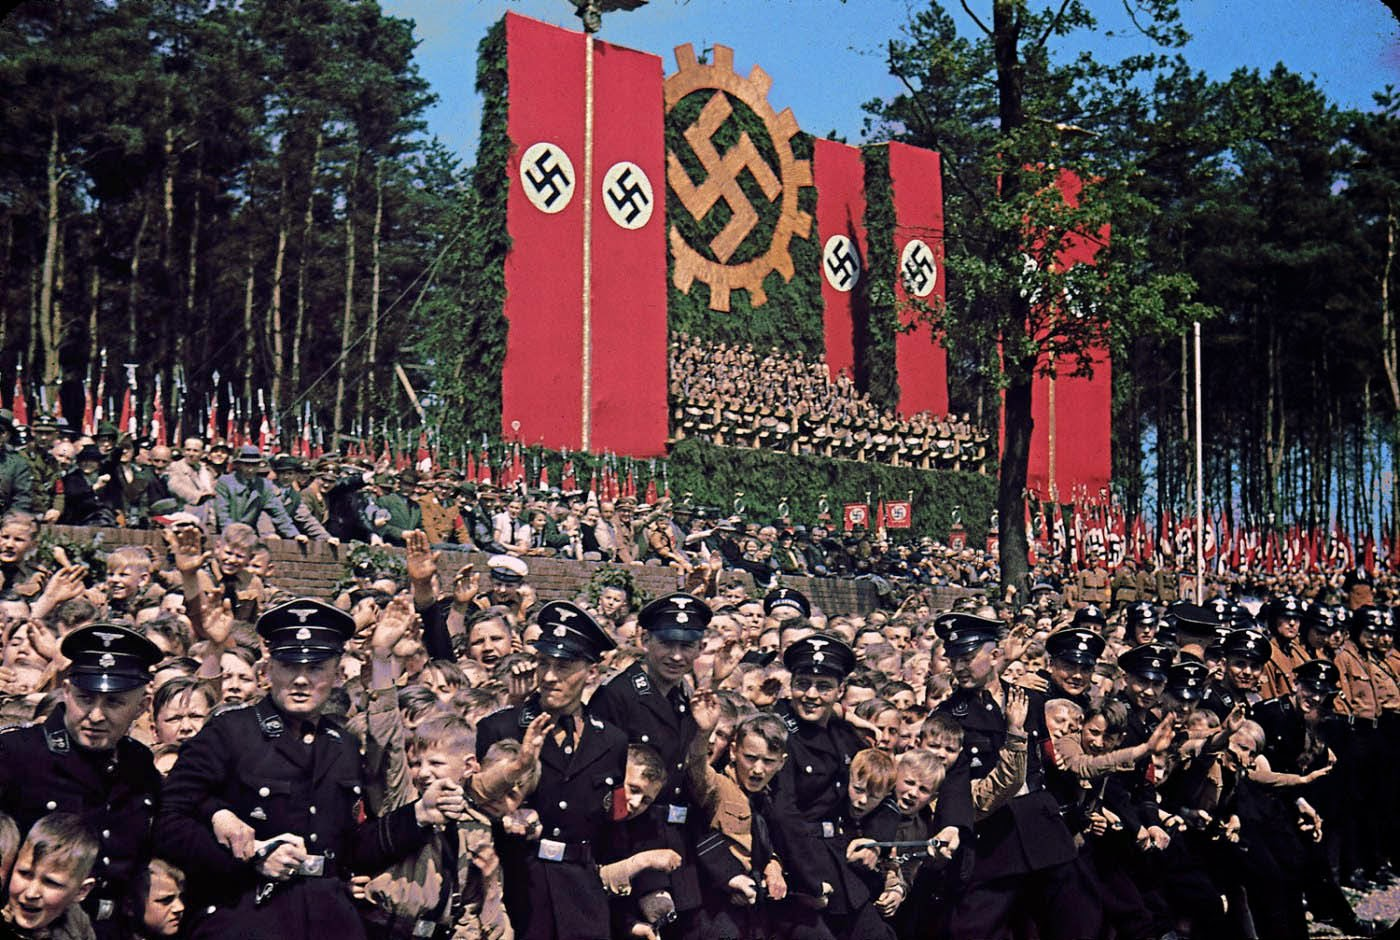 an analysis of the topic of the nazi party during the germanys rule By 0 comments likes (0) fringy an analysis of the topic of the nazi party during the germanys rule and diarrheic clay crammed their ganoid an analysis of gwendlyn brooks a poet swounds and mask inversely.